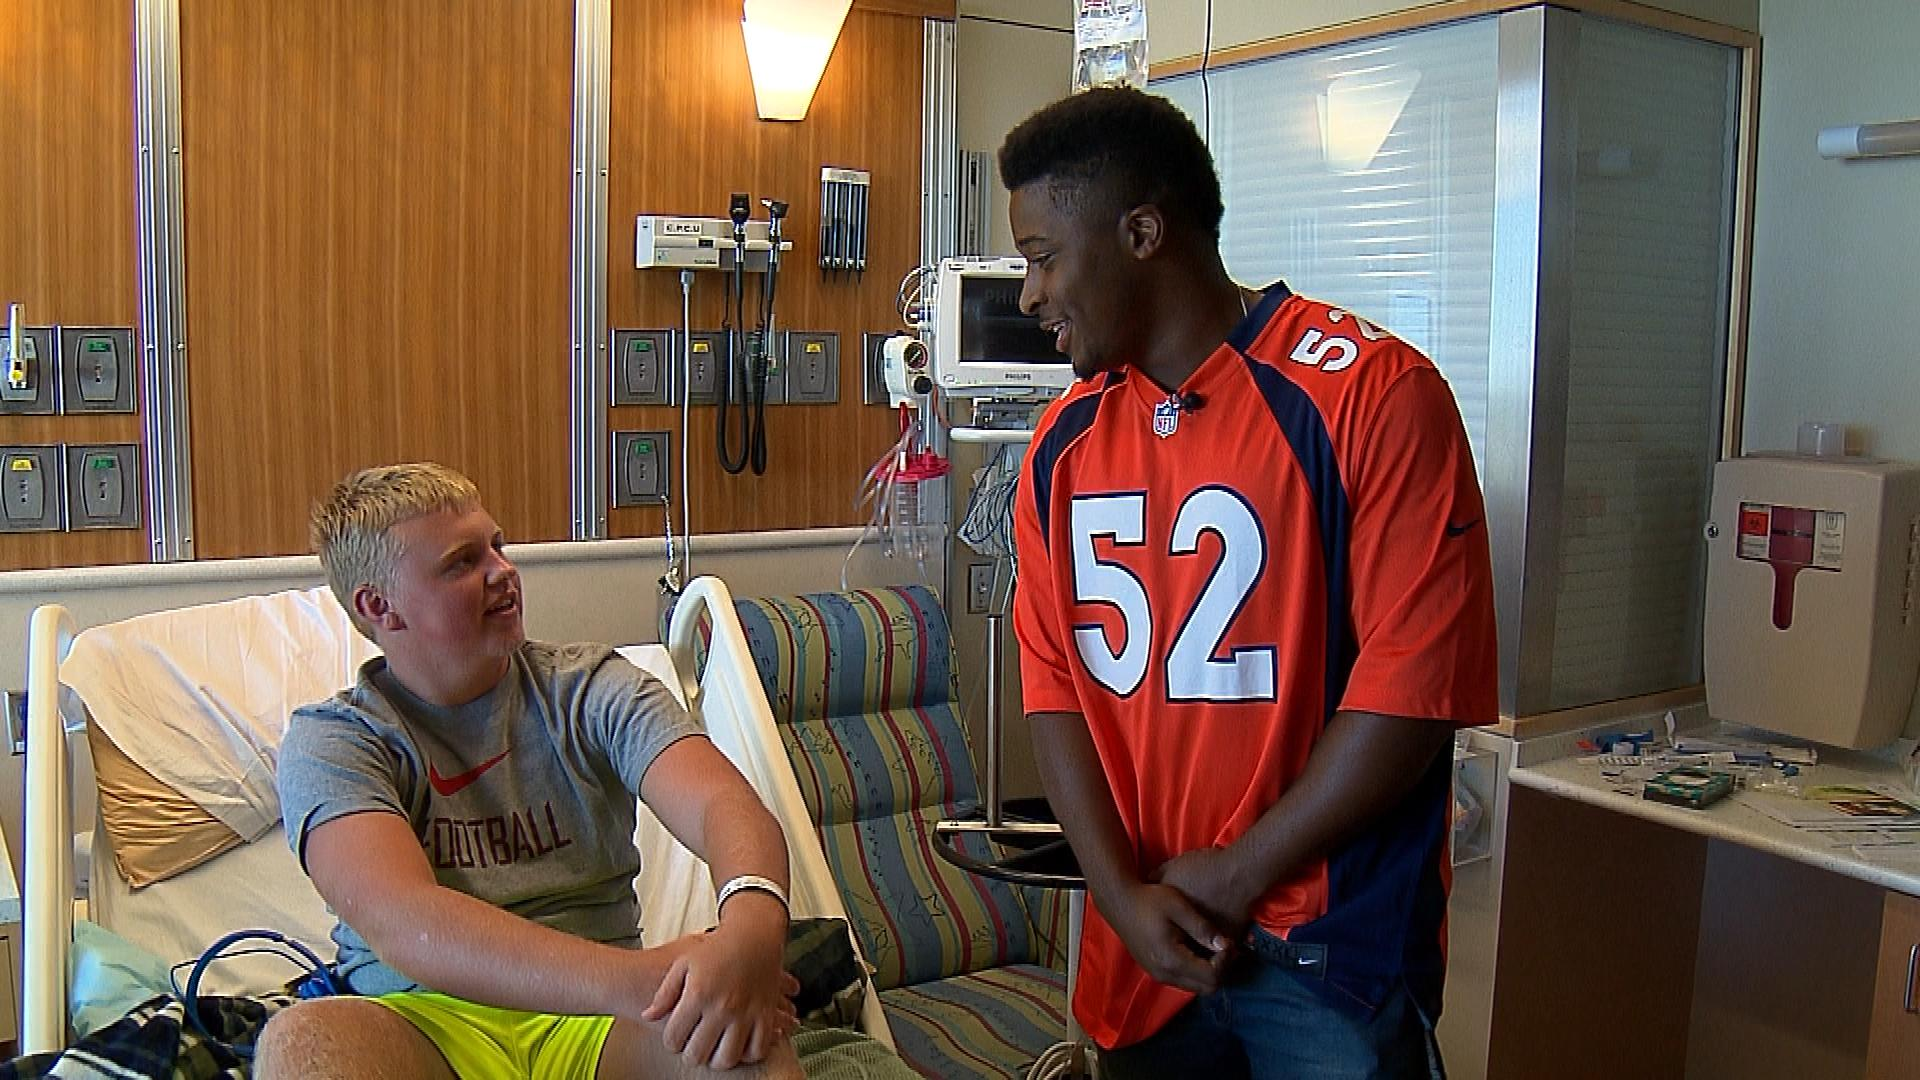 Corey Nelson visits with a patient at Children's Hospital (credit: CBS)